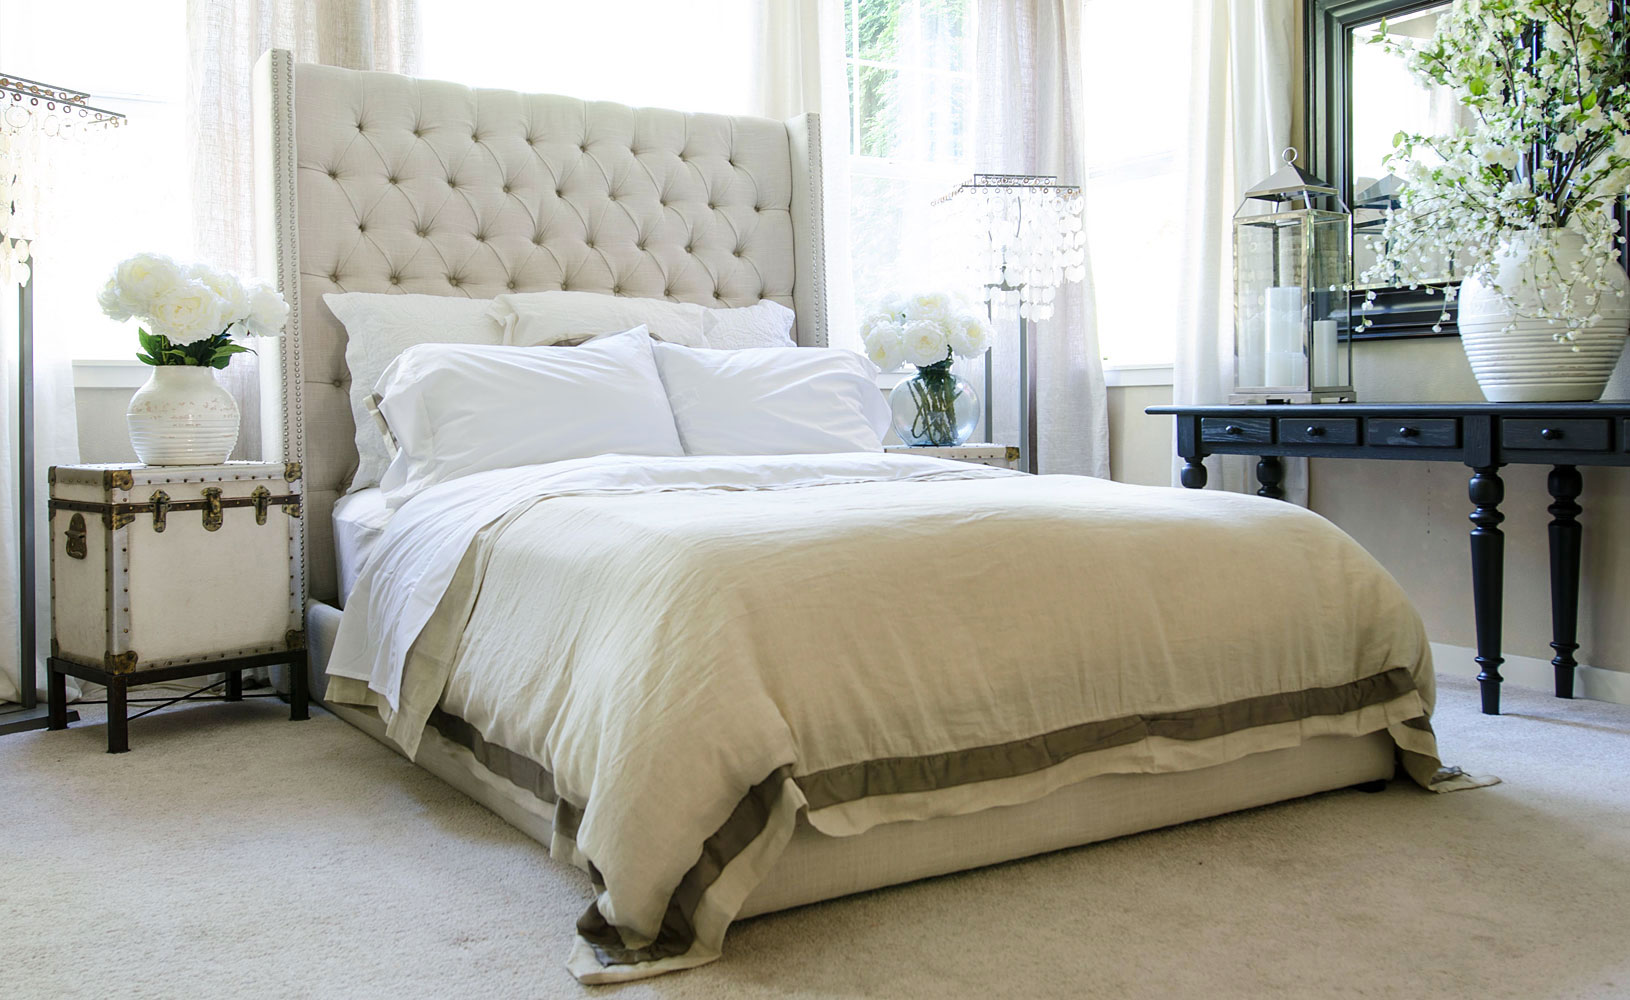 Awe-Inspiring Tall Upholstered Beds that will Enhance Your ... on Comfy Bedroom Ideas  id=63242